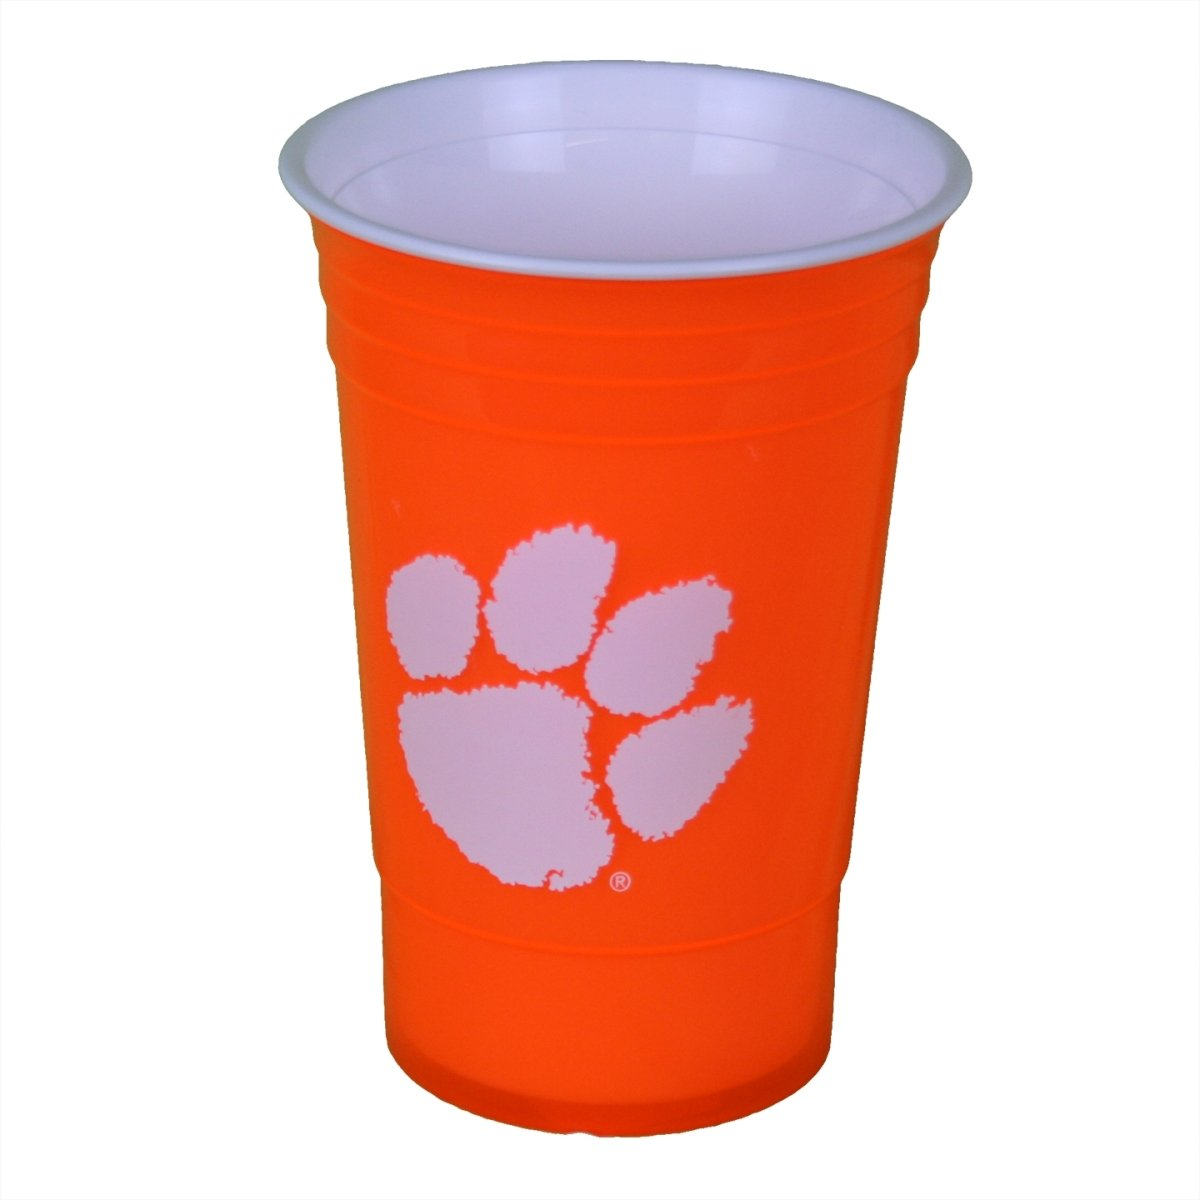 Plastic Party Cup With White Paw - Orange - Mr. Knickerbocker